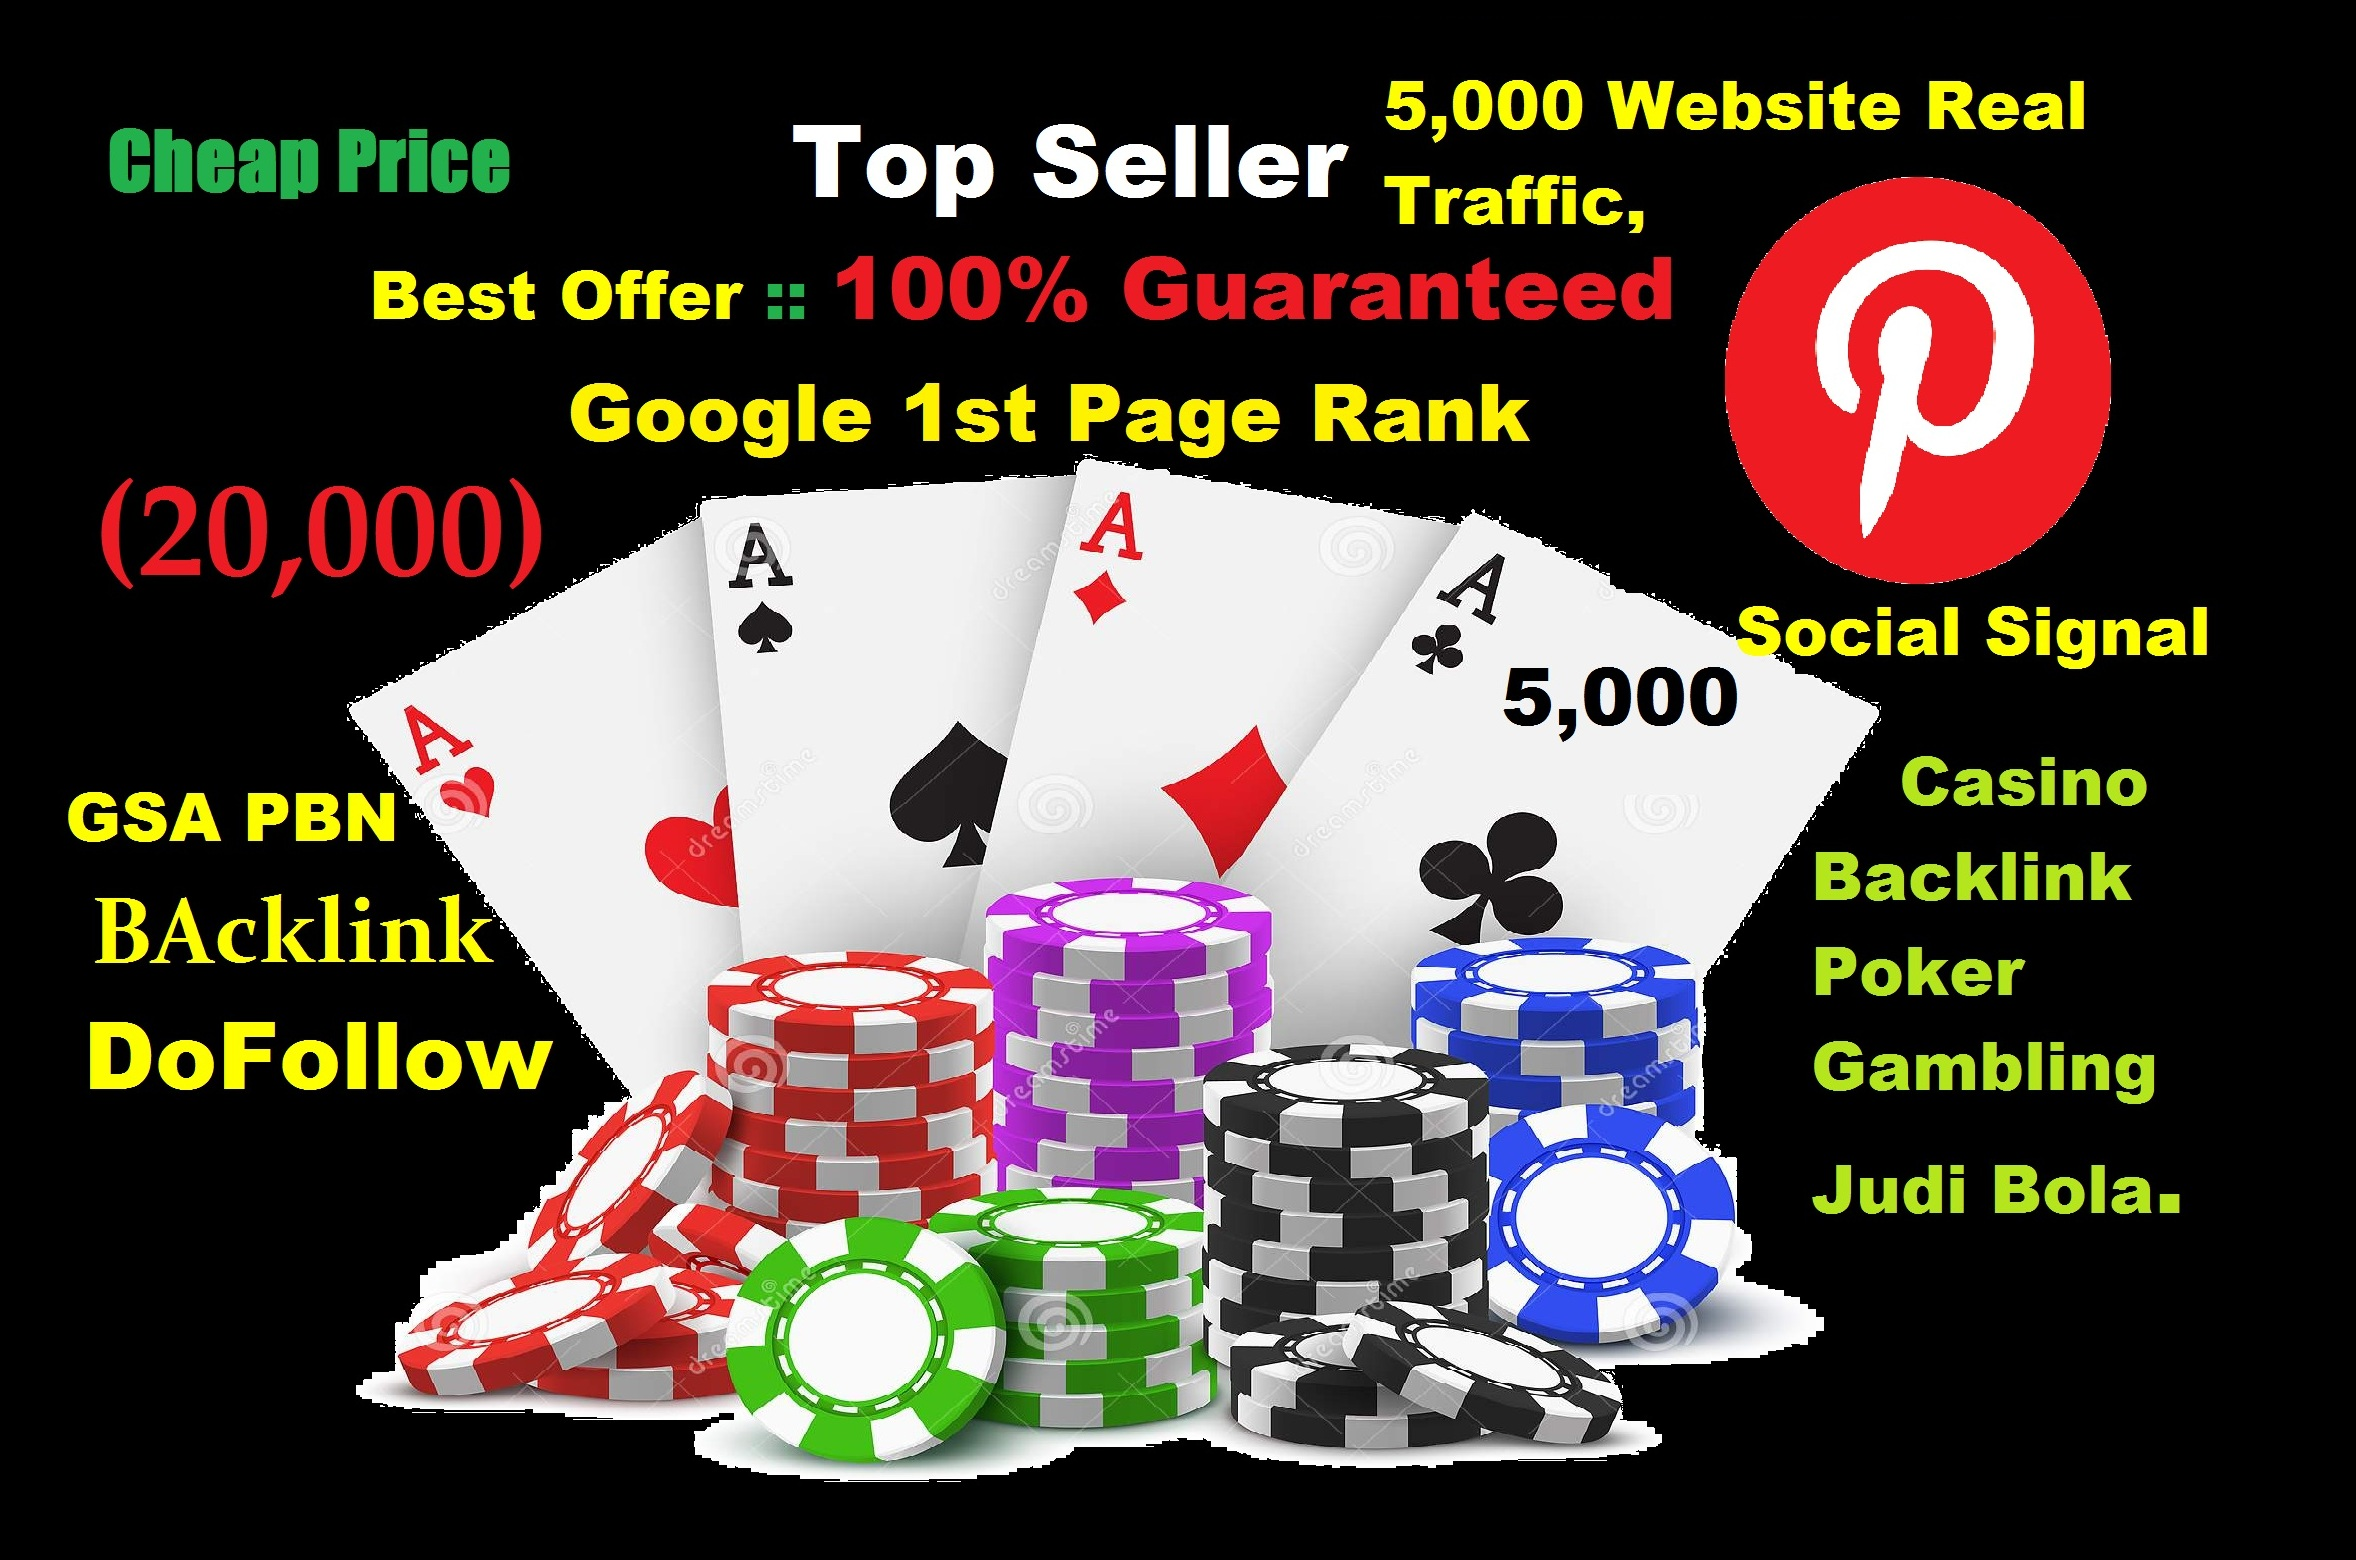 Google Rank Pinterest Social Signal Instagram Traffic GSA Backlink Casino Poker Gambling Online Bet